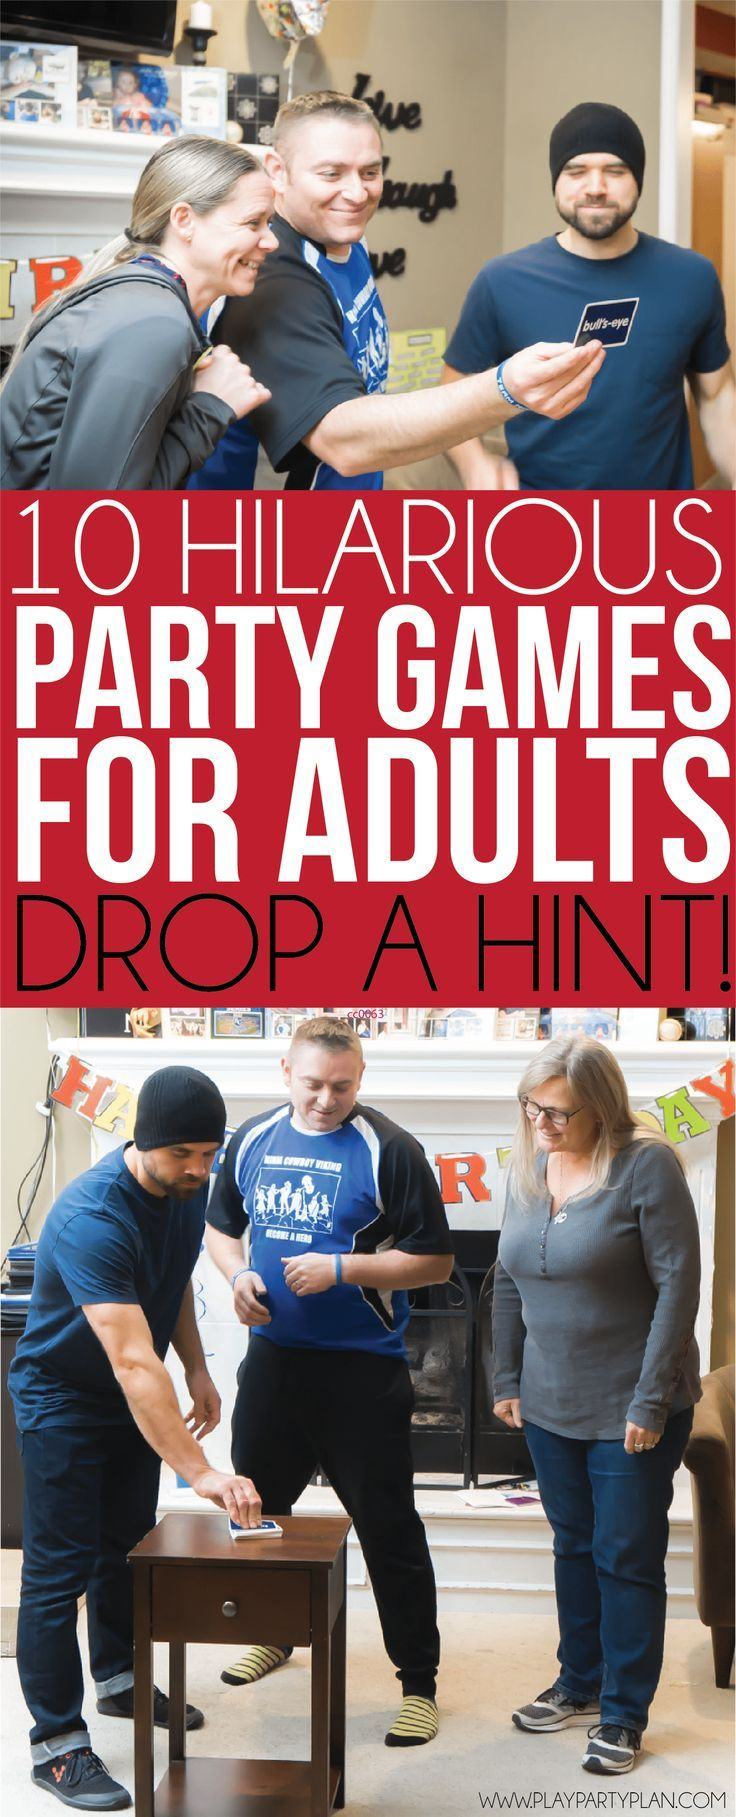 adults to play party games